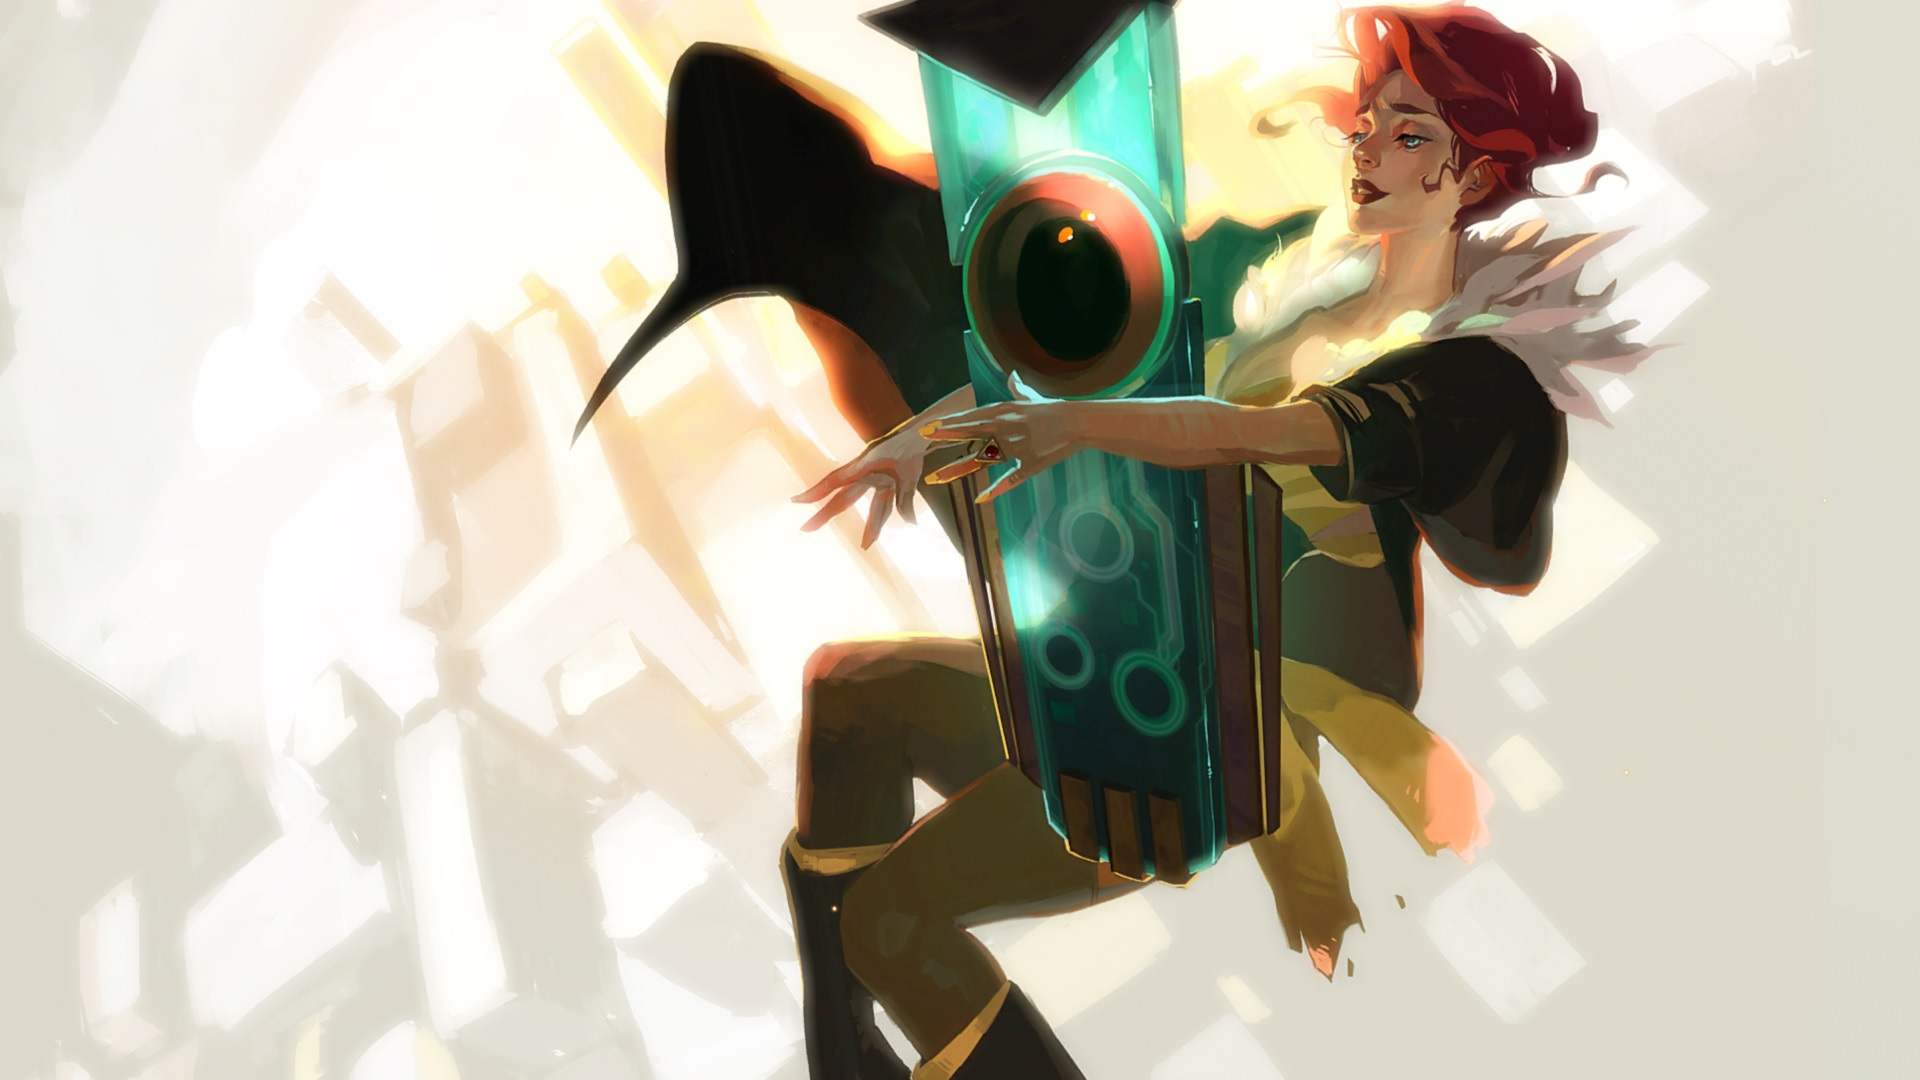 Falling-1920%C3%971080-Transistor-wallpaper-wp3605466